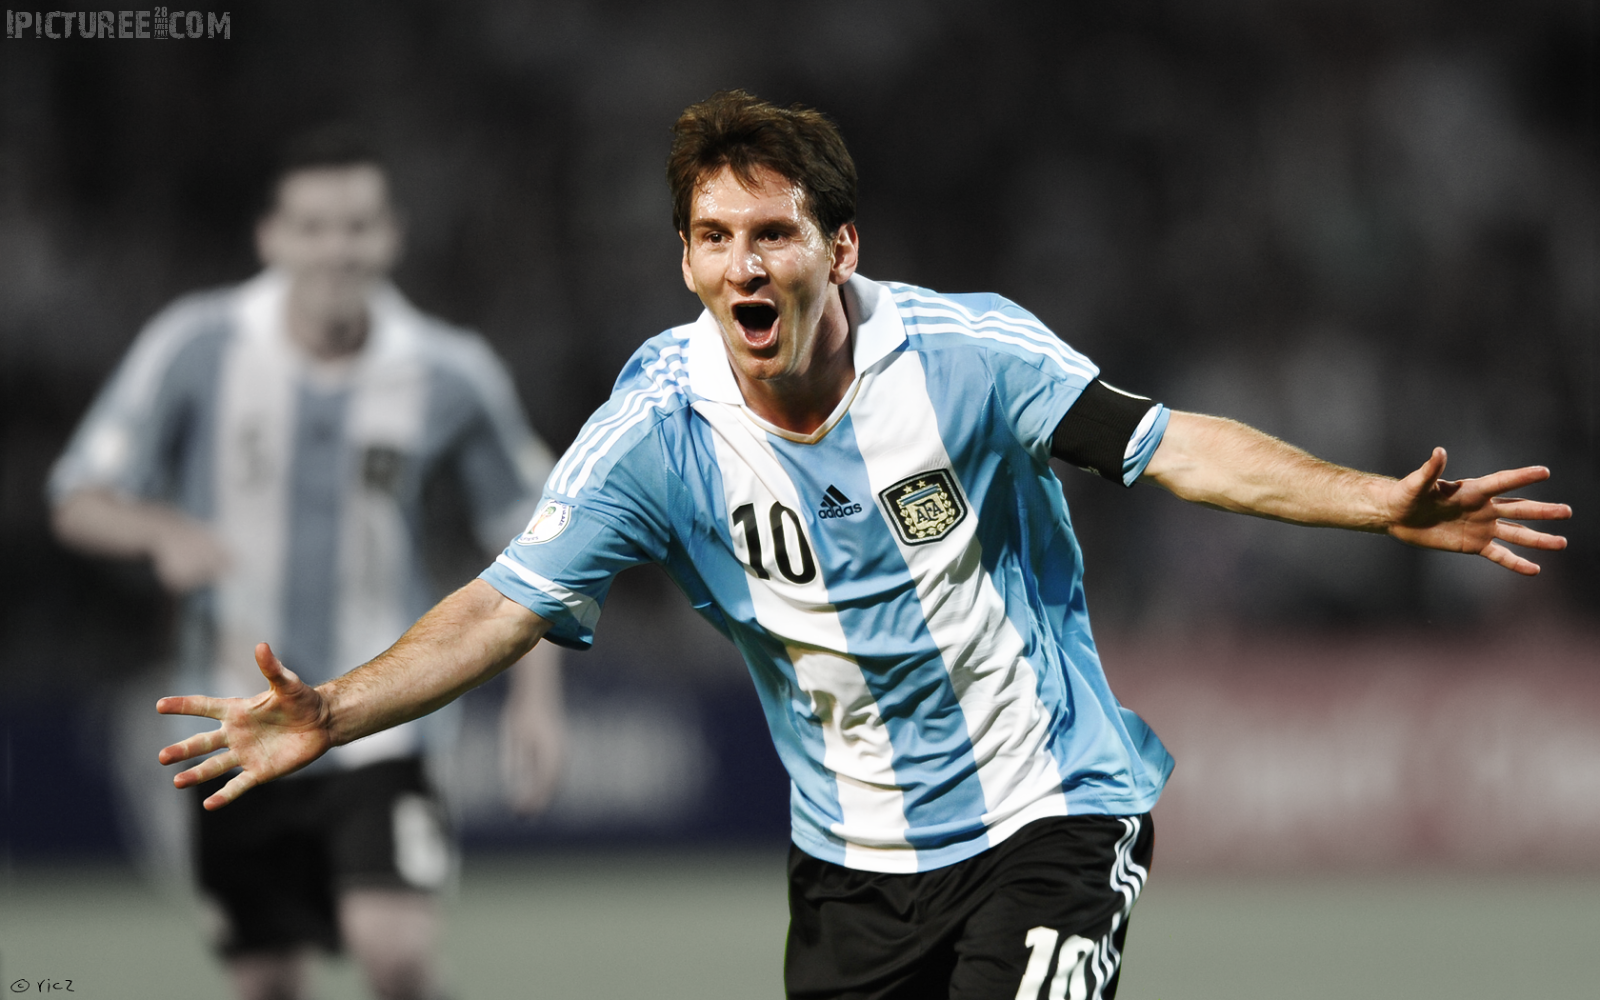 Lionel Messi world cup 2014 HD Wallpaper 1600×1000